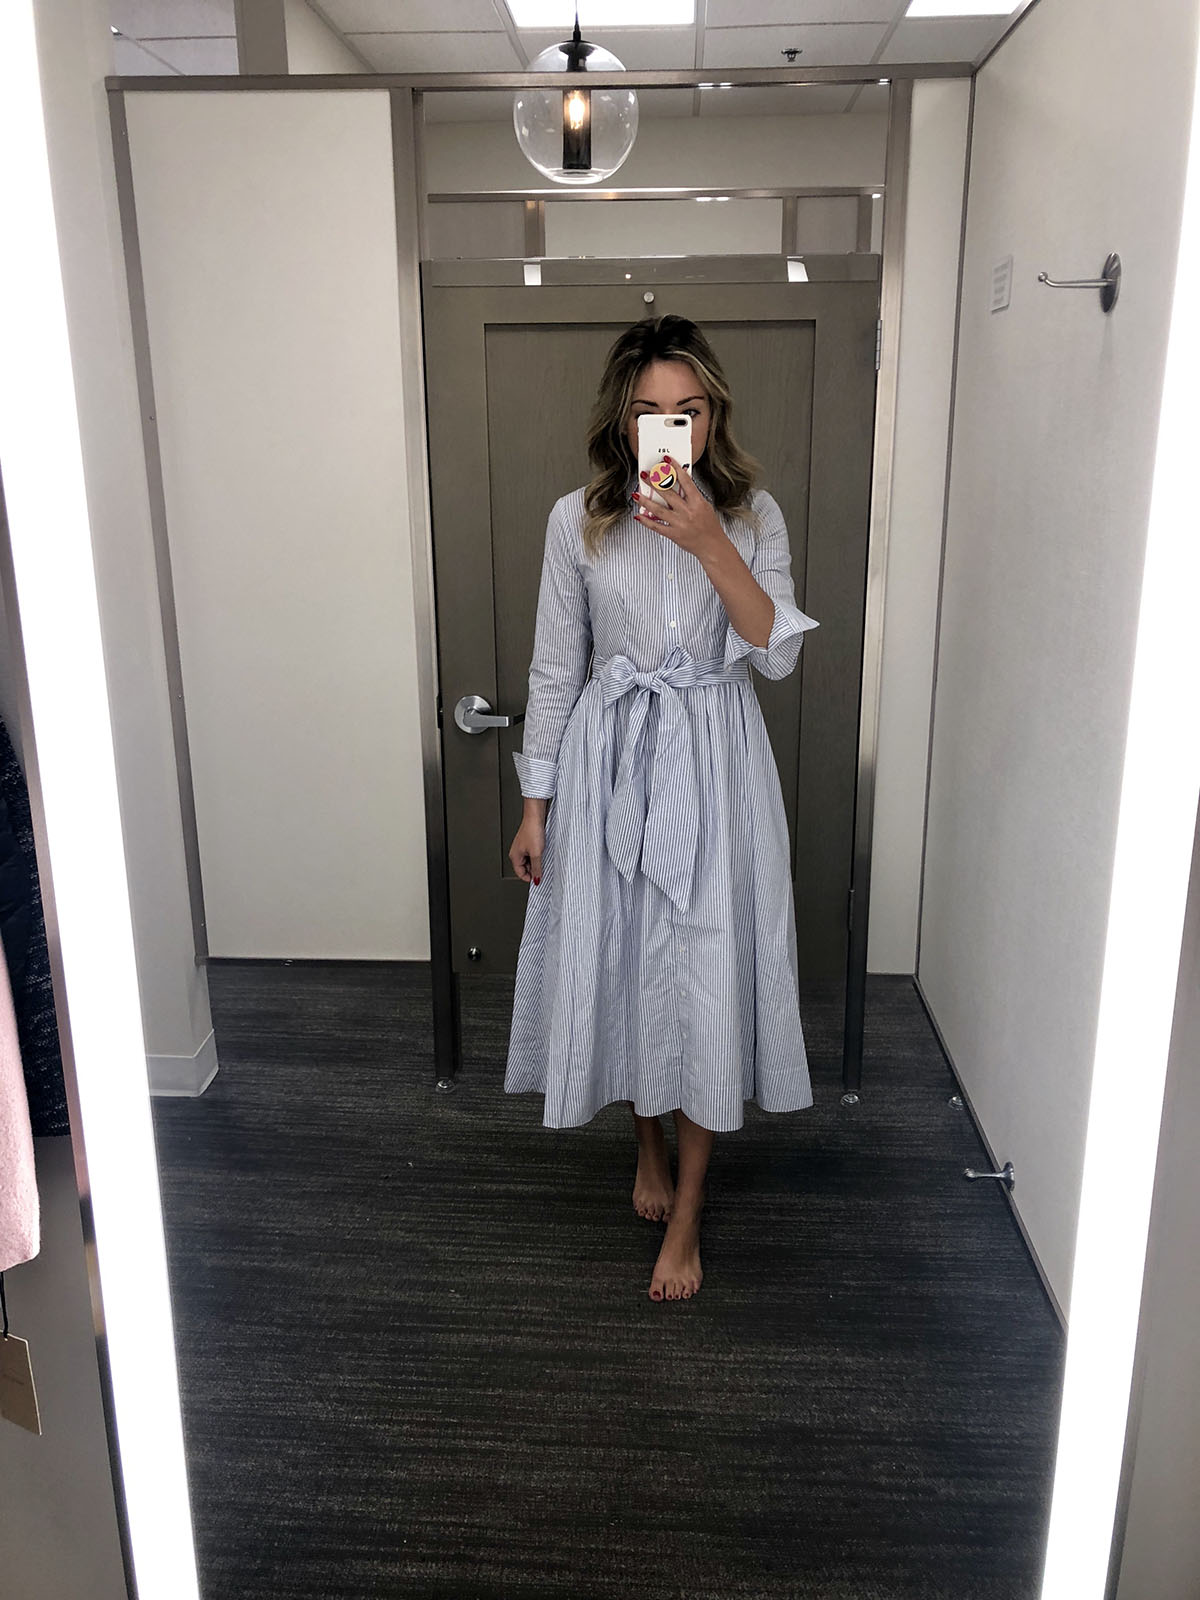 882e61ad4a1f Nordstrom Anniversary Sale Best Purchase 1901 Striped Midi Shirt Dress Fit  & Flare Dressing Room Try